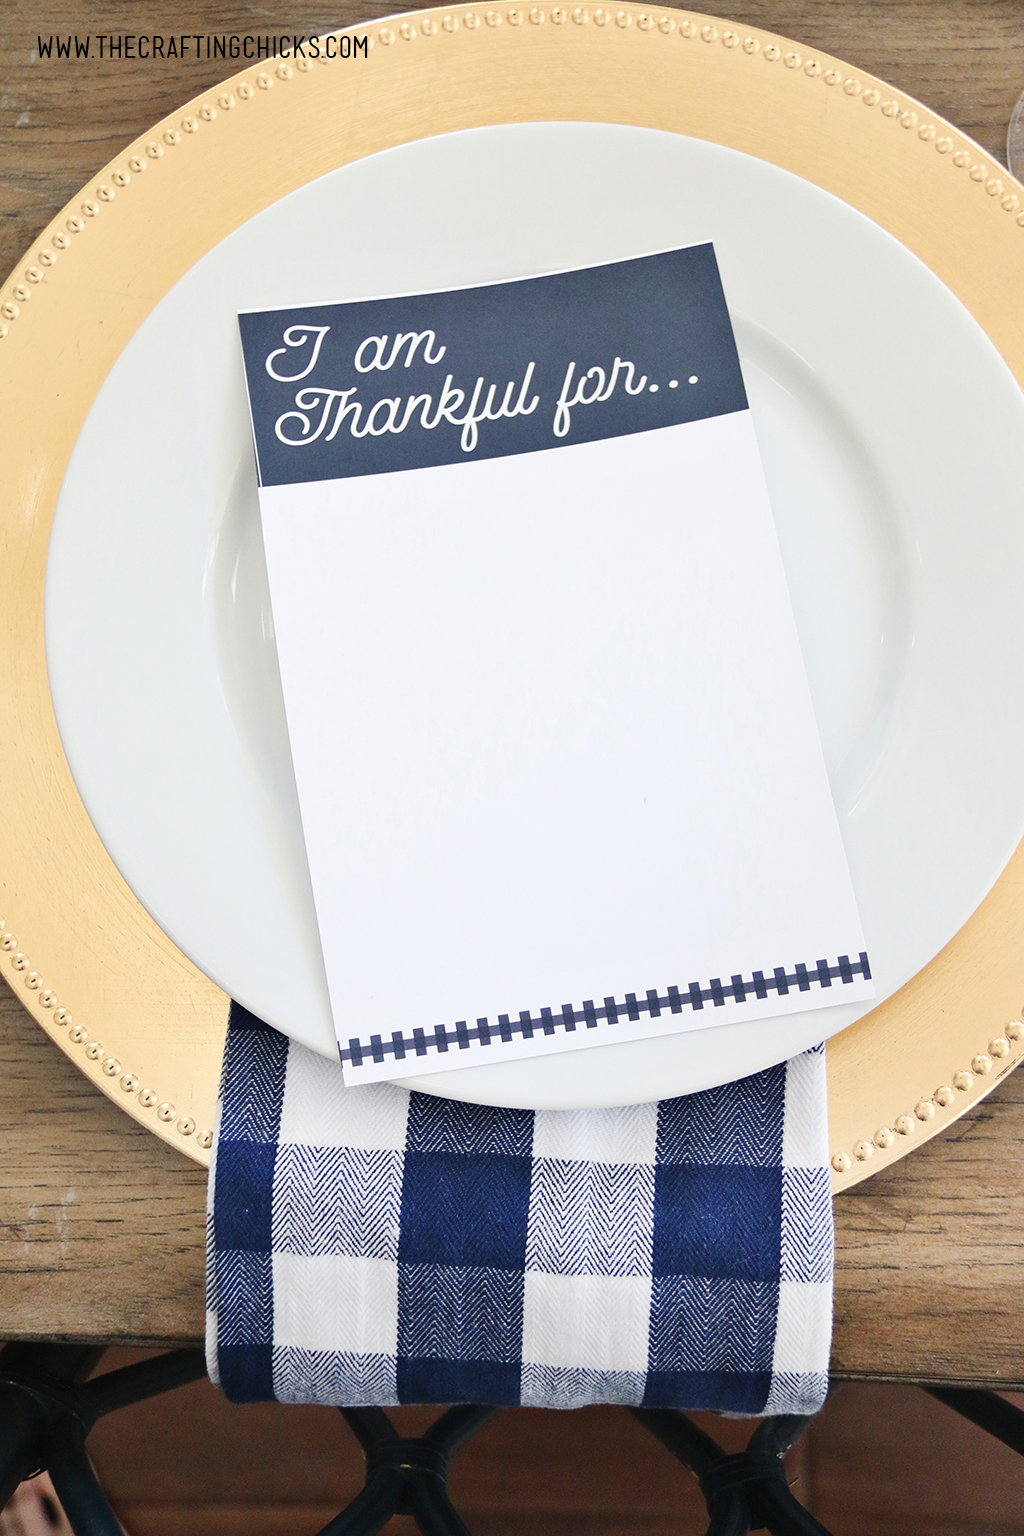 I am Thankful for printable cards on a thanksgiving table.